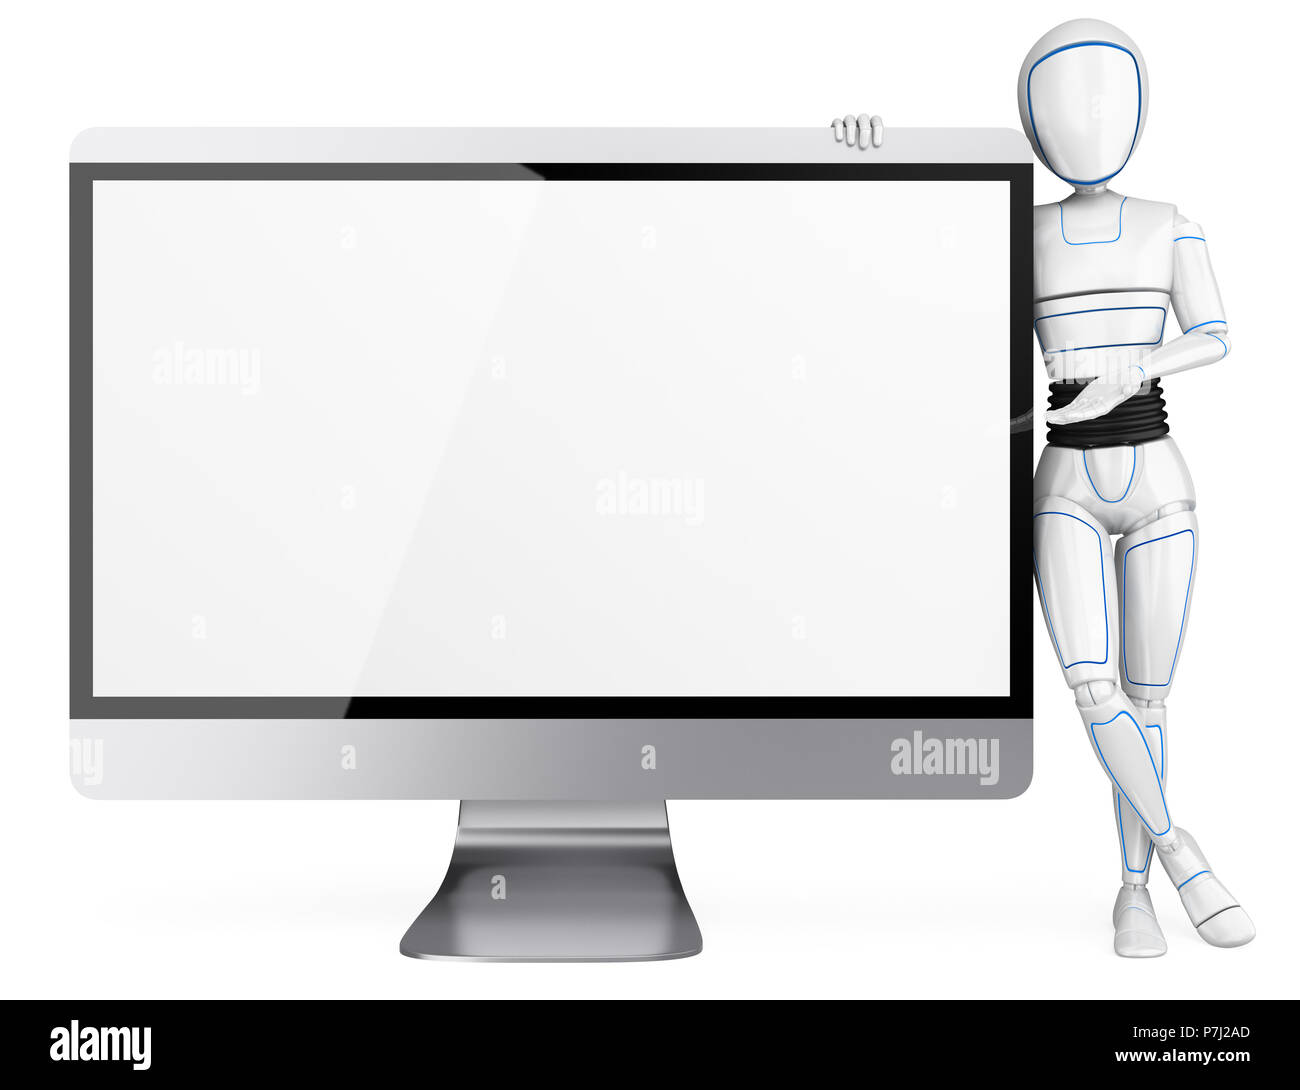 3d futuristic android illustration. Humanoid robot leaning on a big blank screen. Isolated white background. - Stock Image